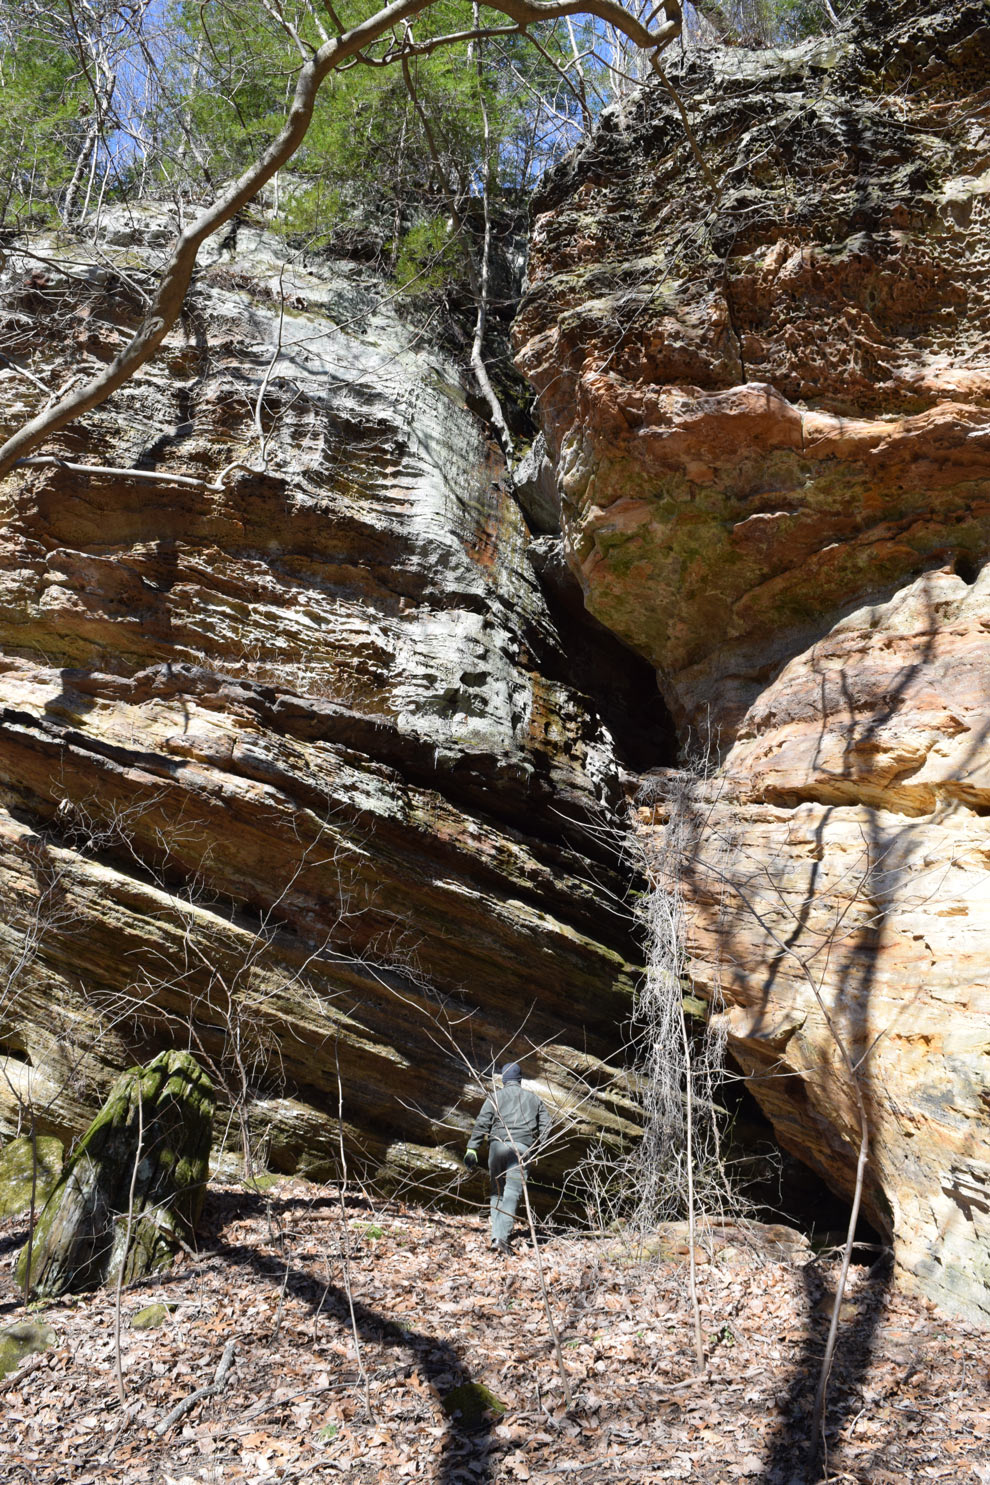 A Metro Parks staff member approaches the entrance to a cave at Clear Creek while searching for bats